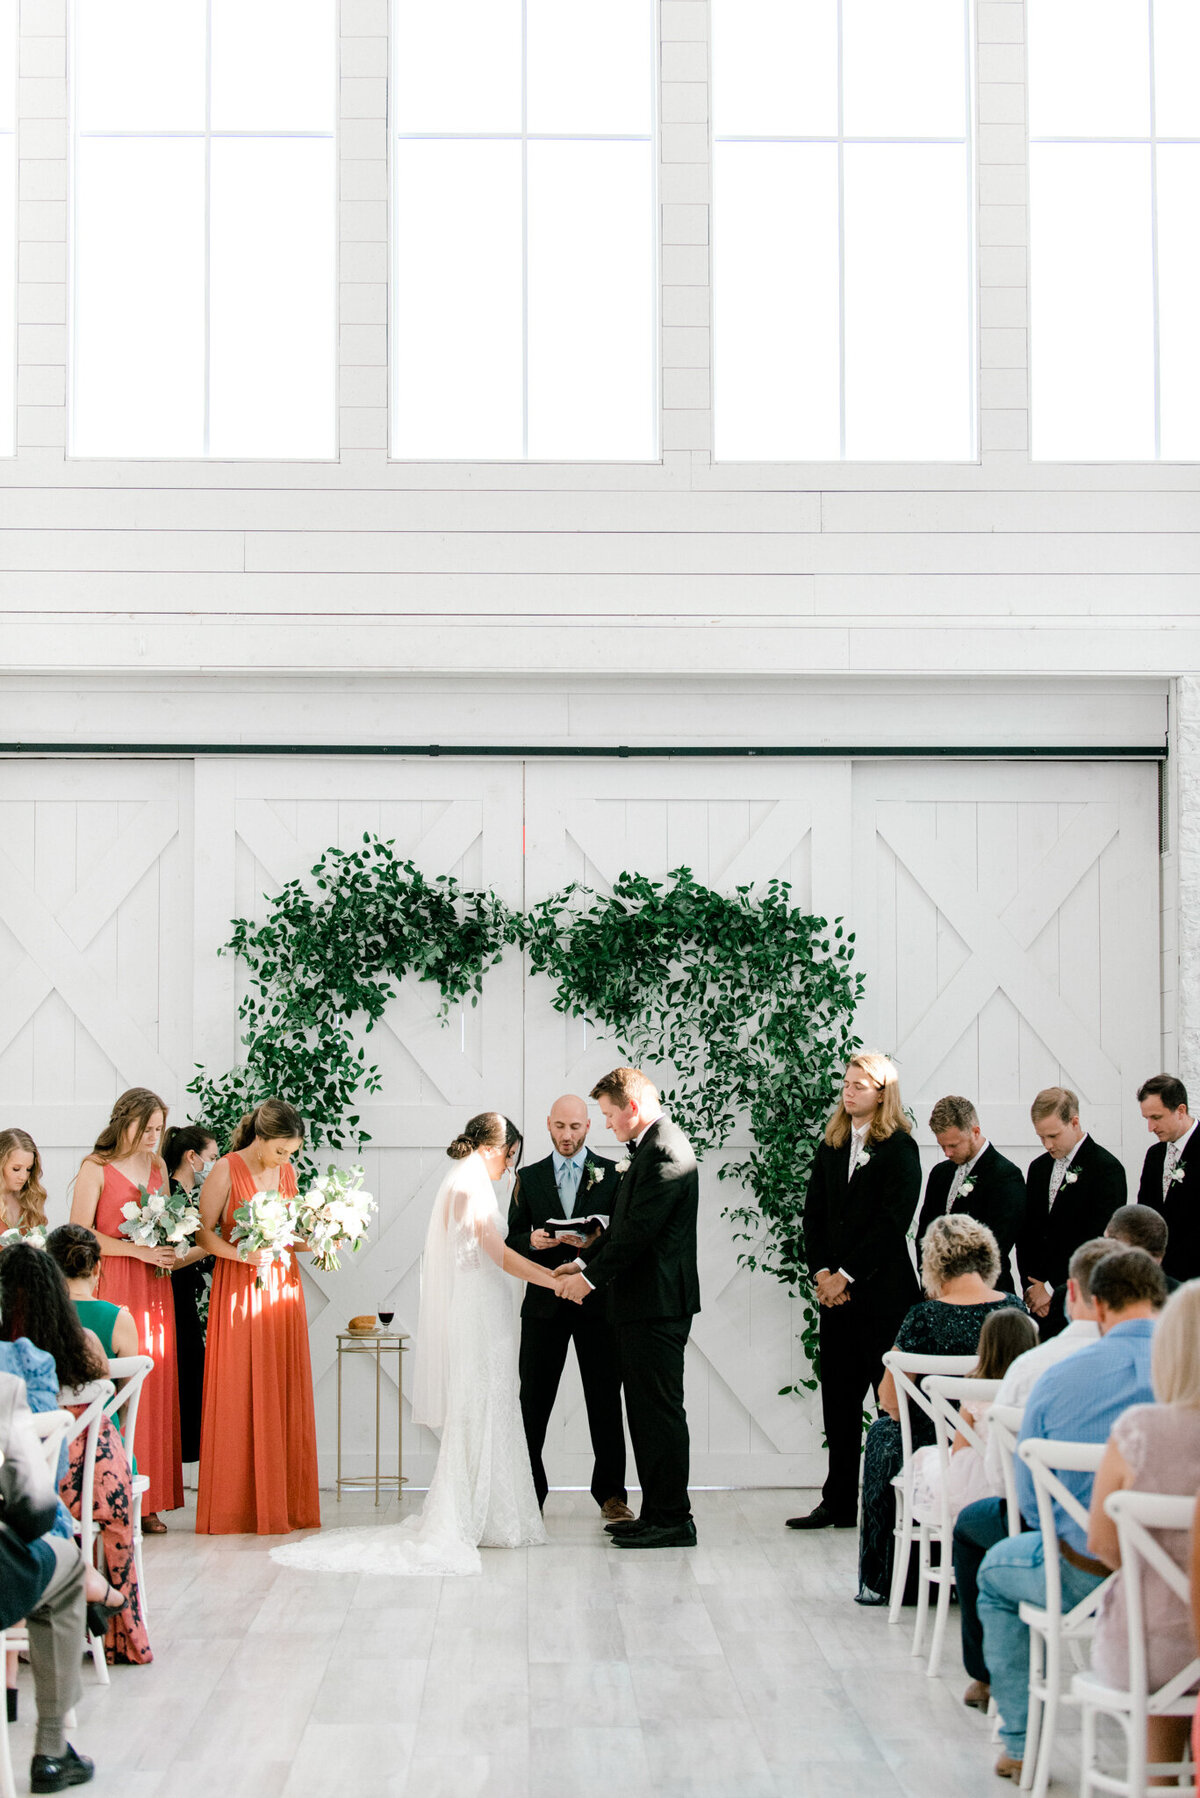 Anna & Billy's Wedding at The Nest at Ruth Farms | Dallas Wedding Photographer | Sami Kathryn Photography-77